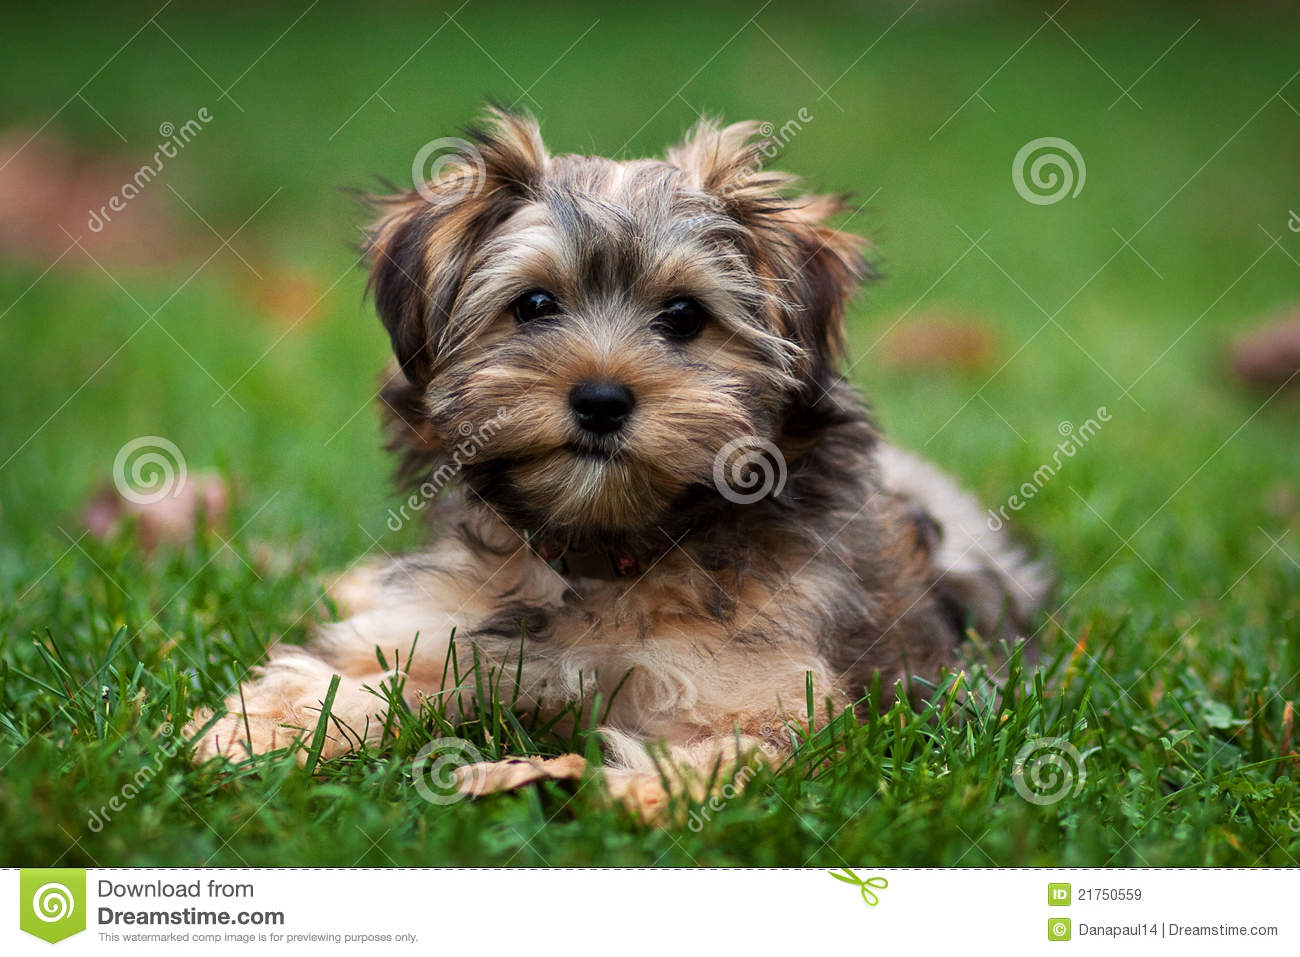 Yorkie And Shih Tzu Mixed Puppy Stock Image Image Of Friendship